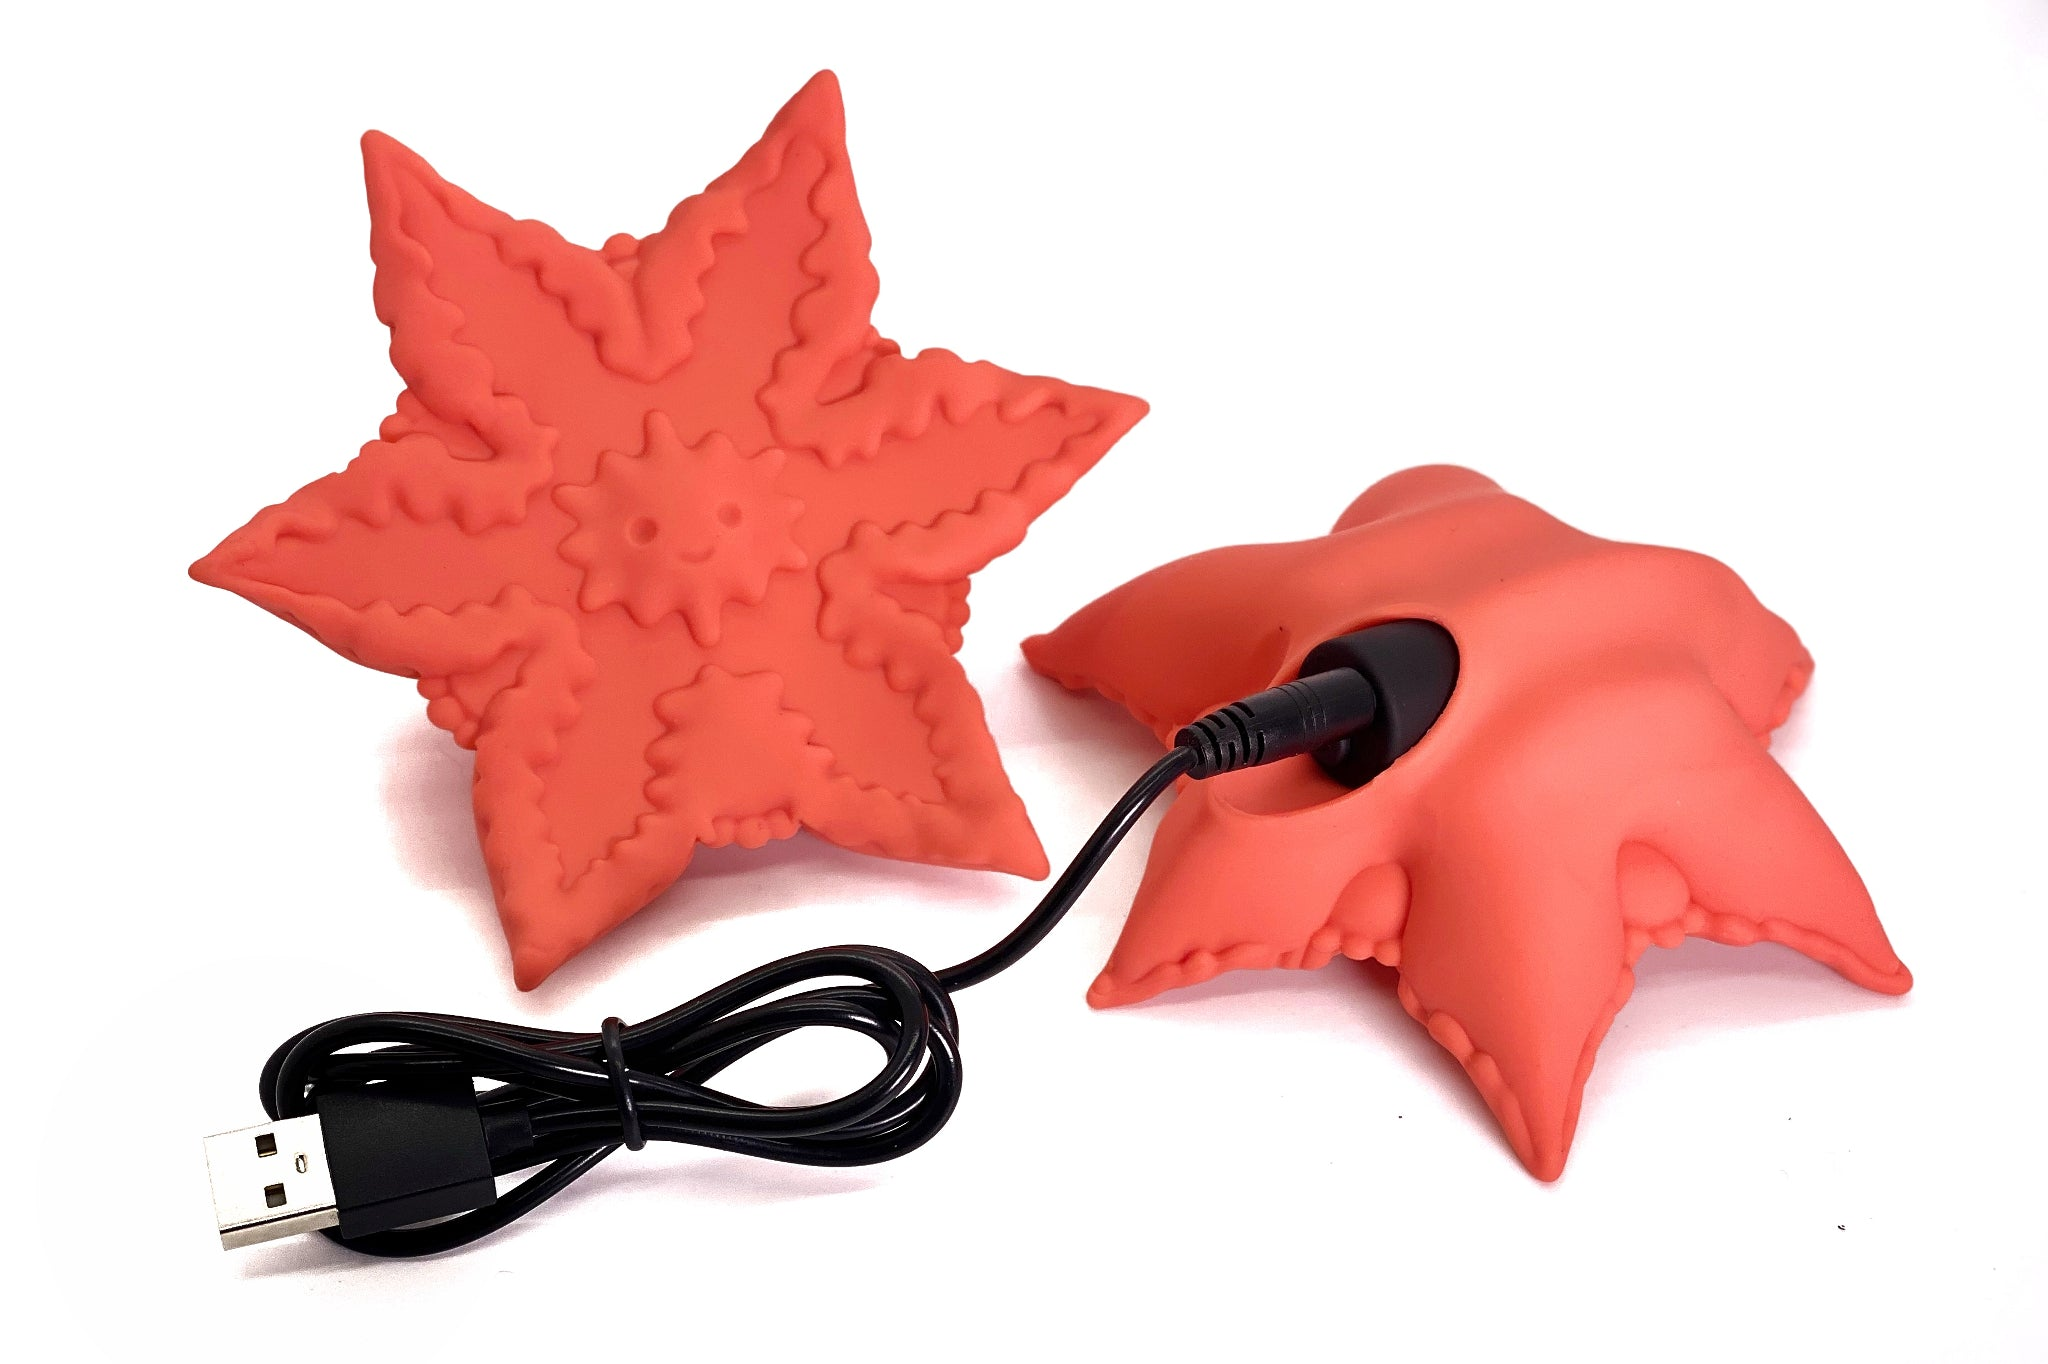 Starsi - Vibrating Silicone Toy